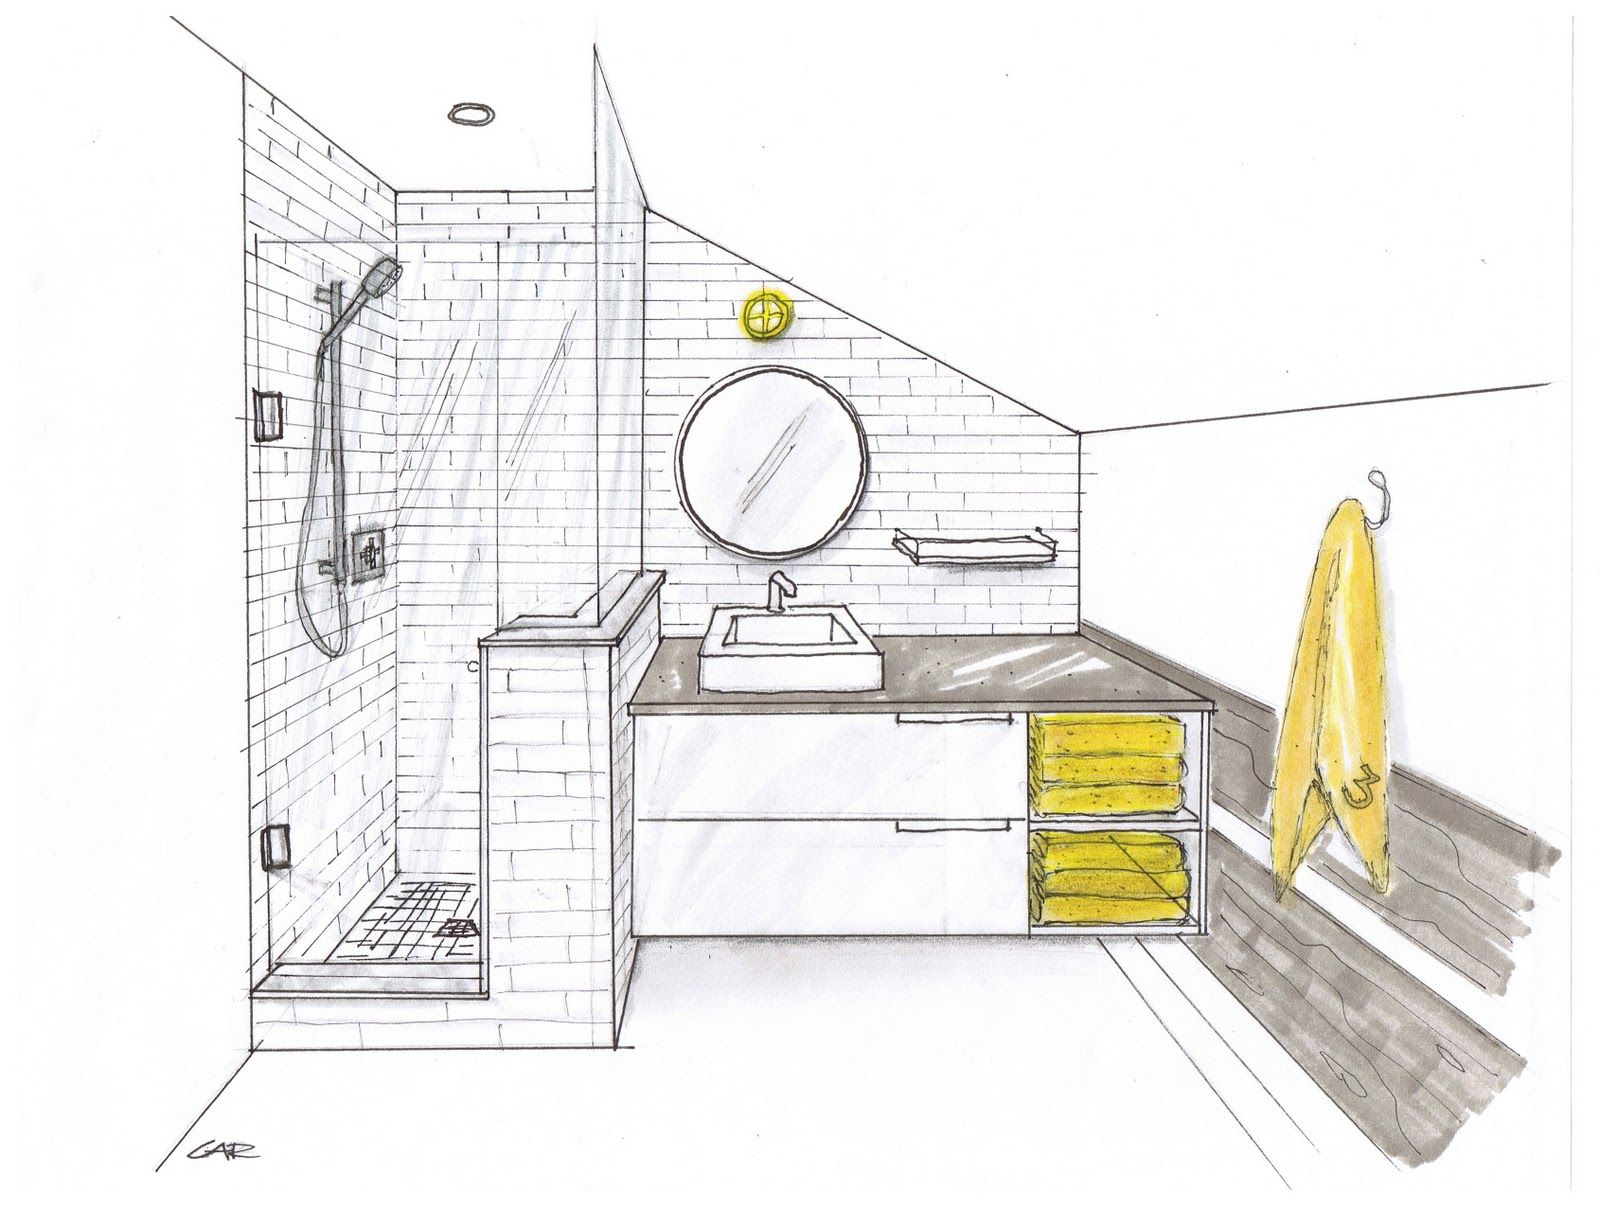 Bathroom drawing for kids - Bathroom One Point Perspective Google Search Simple Bathrooms One Point Perspective Google Search Art